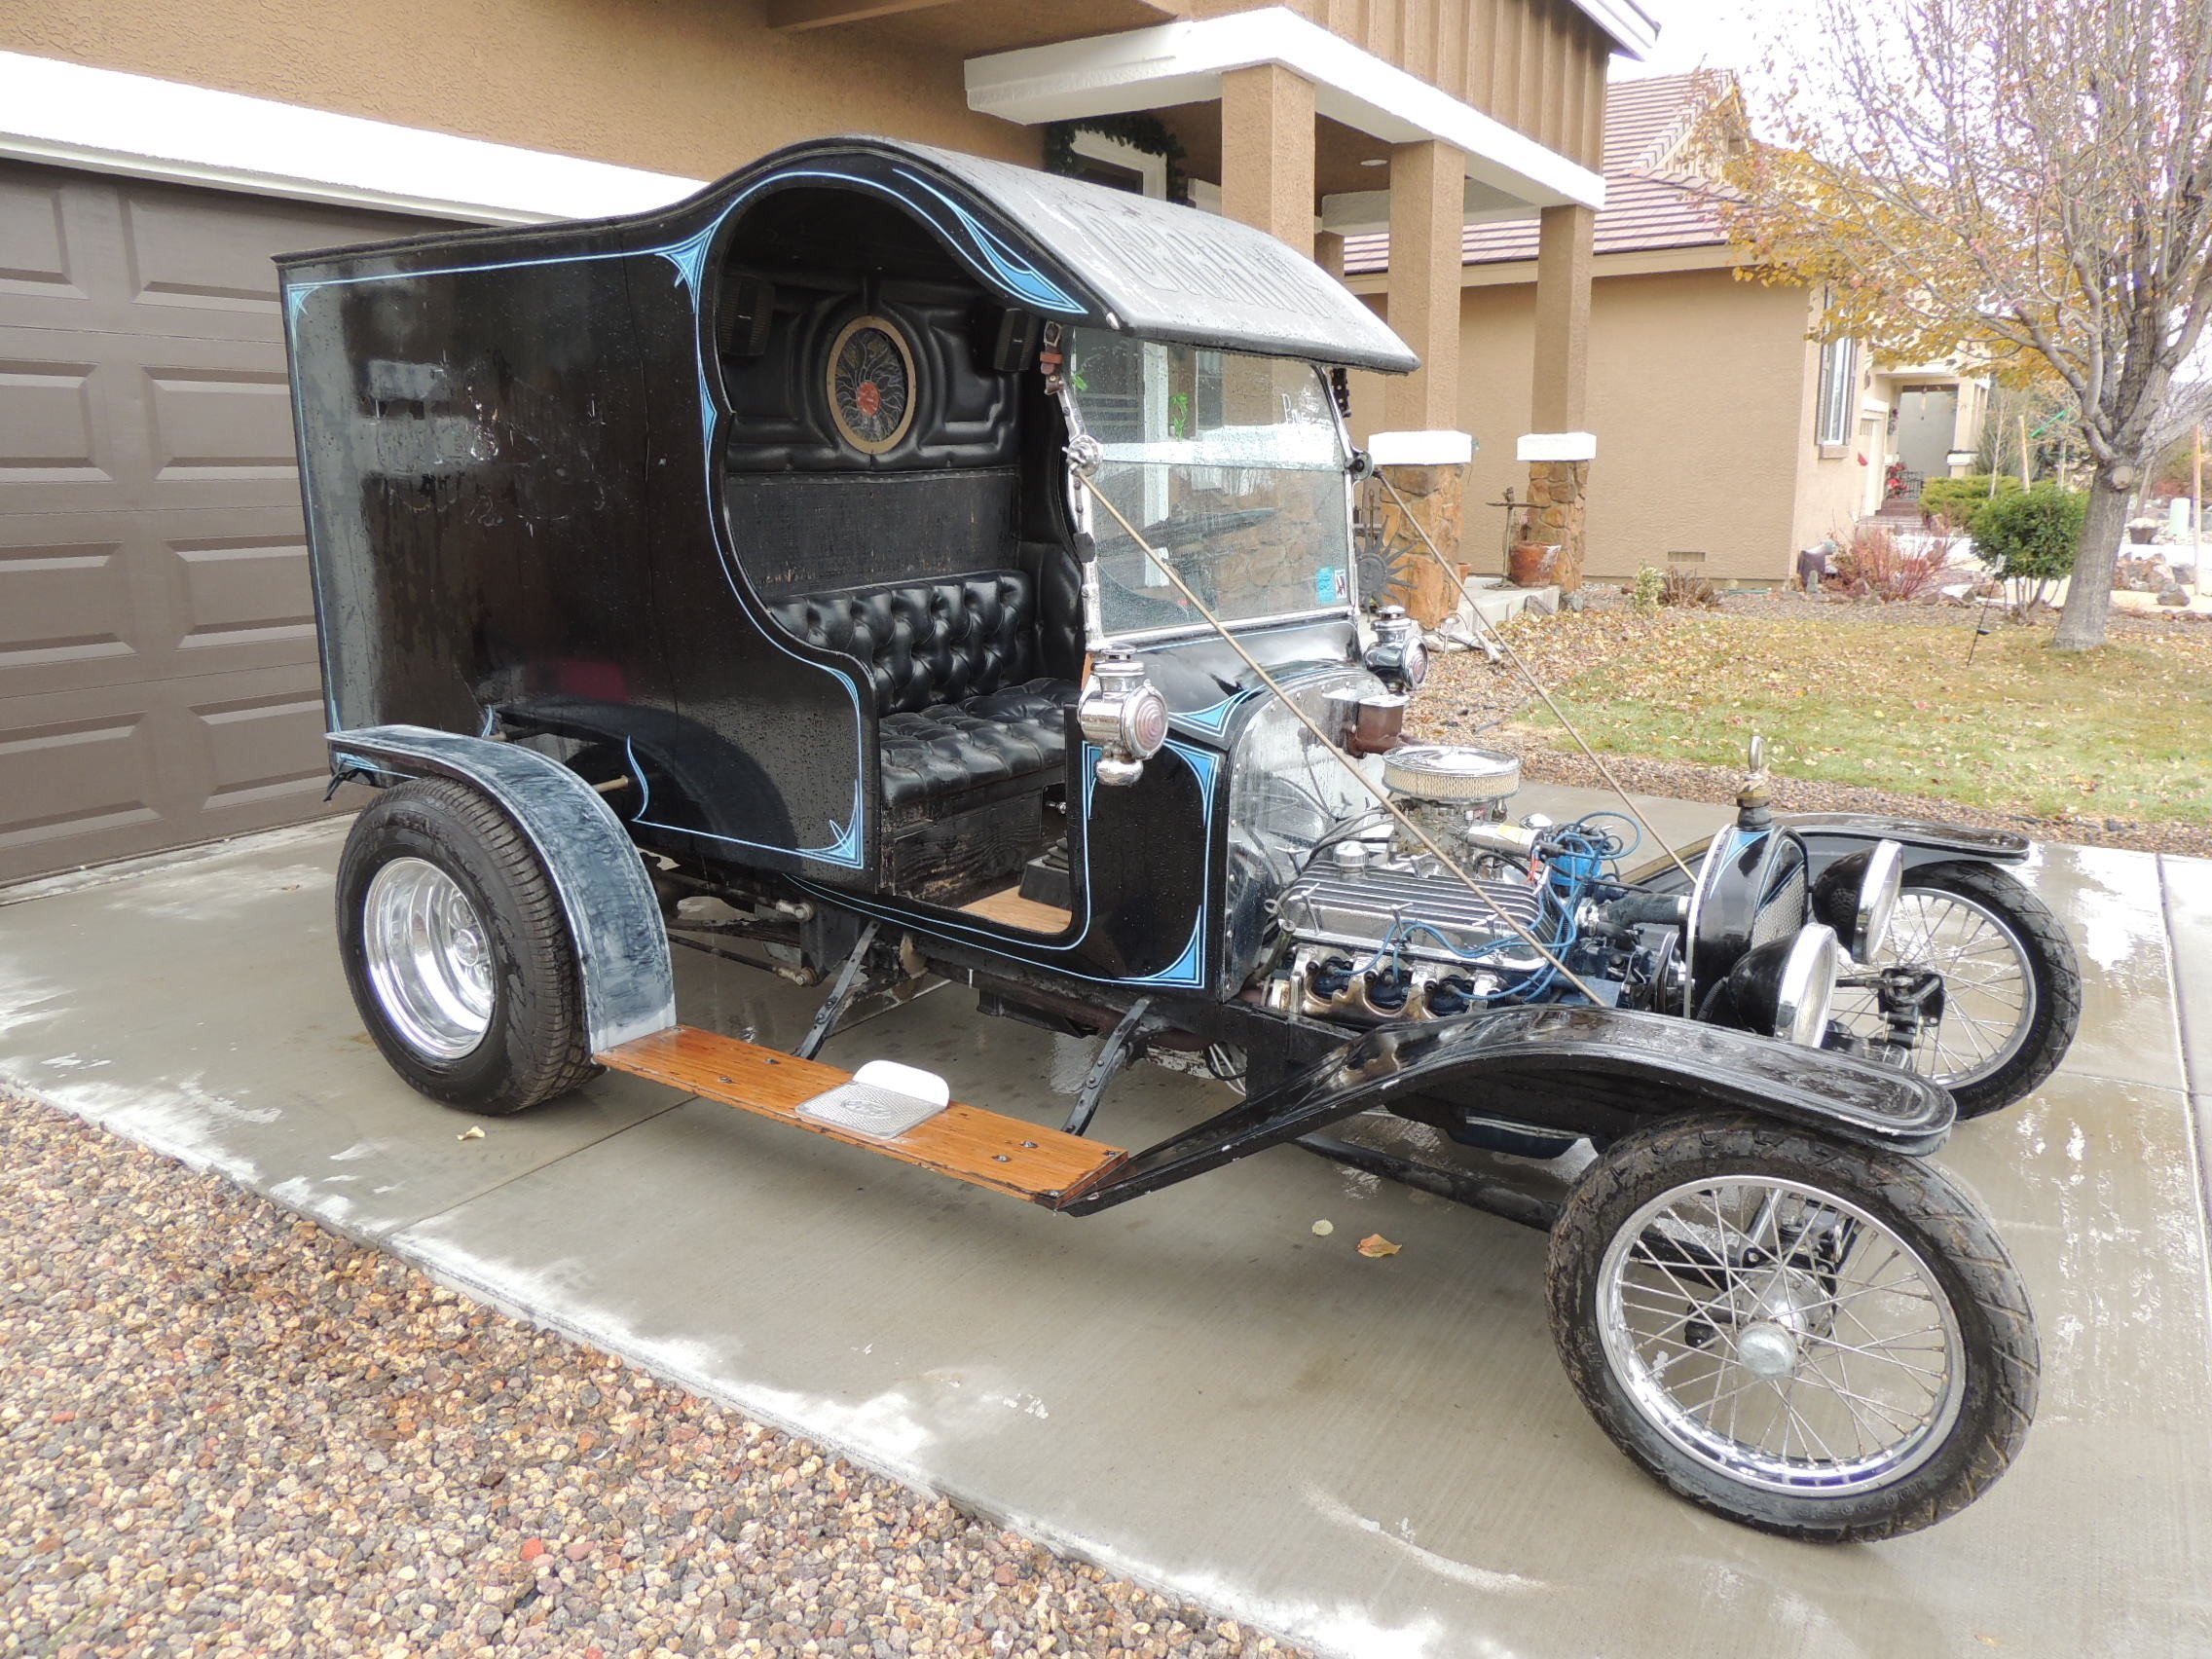 1925 Model T Wiring Diagrams Electrical Wiring Diagrams 1929 Model A  Ignition Wiring 1915 Ford Model T Wiring Diagram